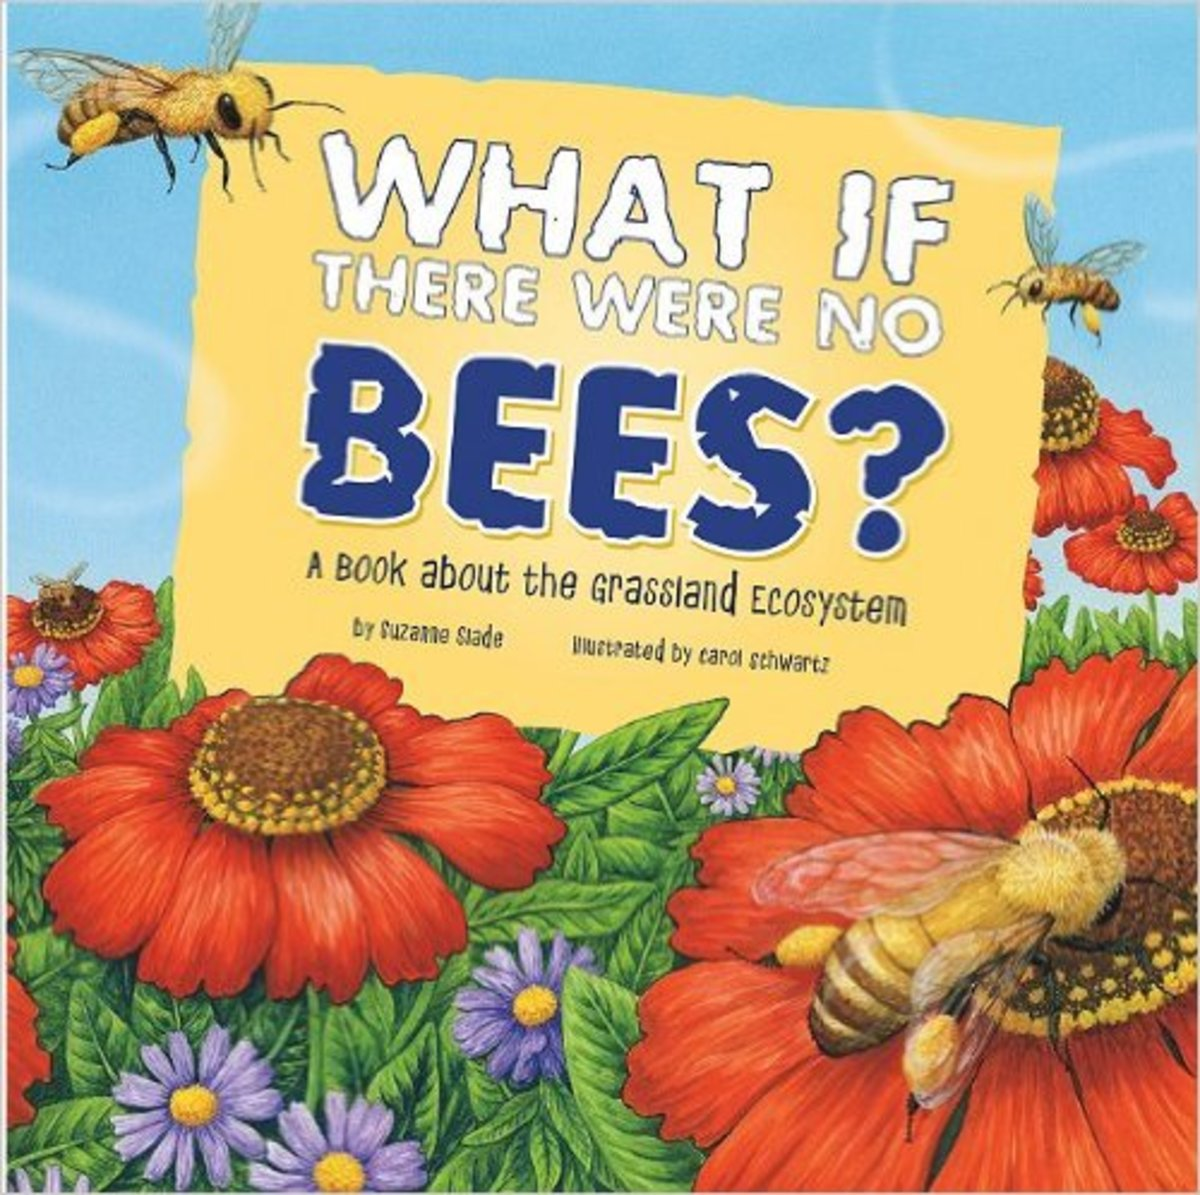 What If There Were No Bees?: A Book About the Grassland Ecosystem (Food Chain Reactions) by Suzanne Slade